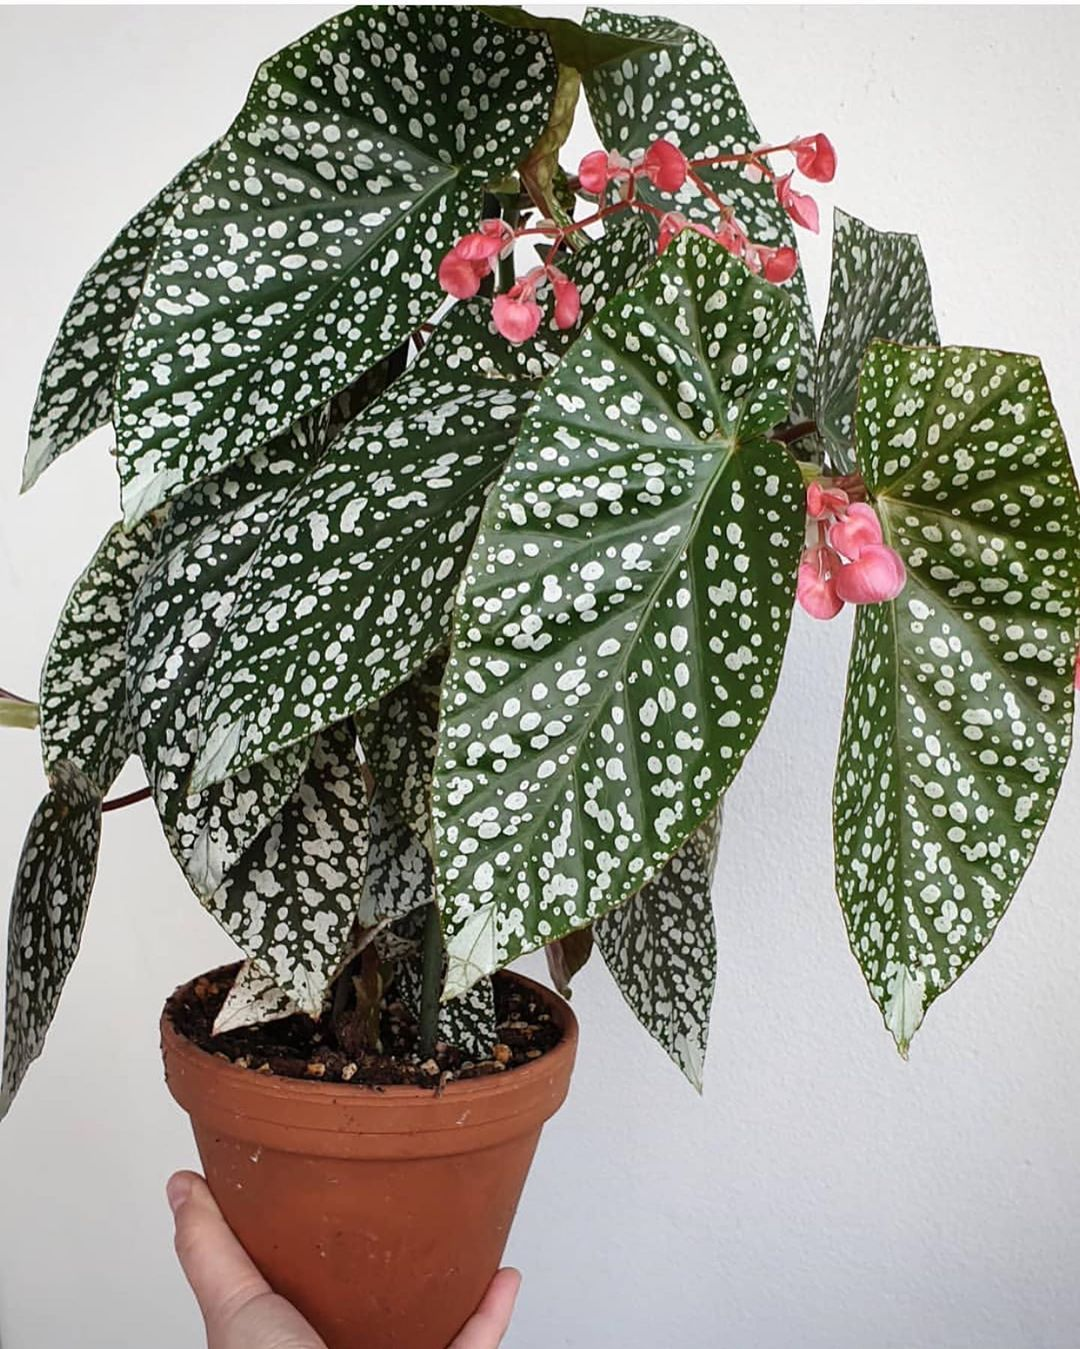 The Begonia Brigade On Instagram Begoniasnowcap By Kamilase Plants Houseplants Urbanjungle Indoorjungle Container Garden Design Plants Foliage Plants